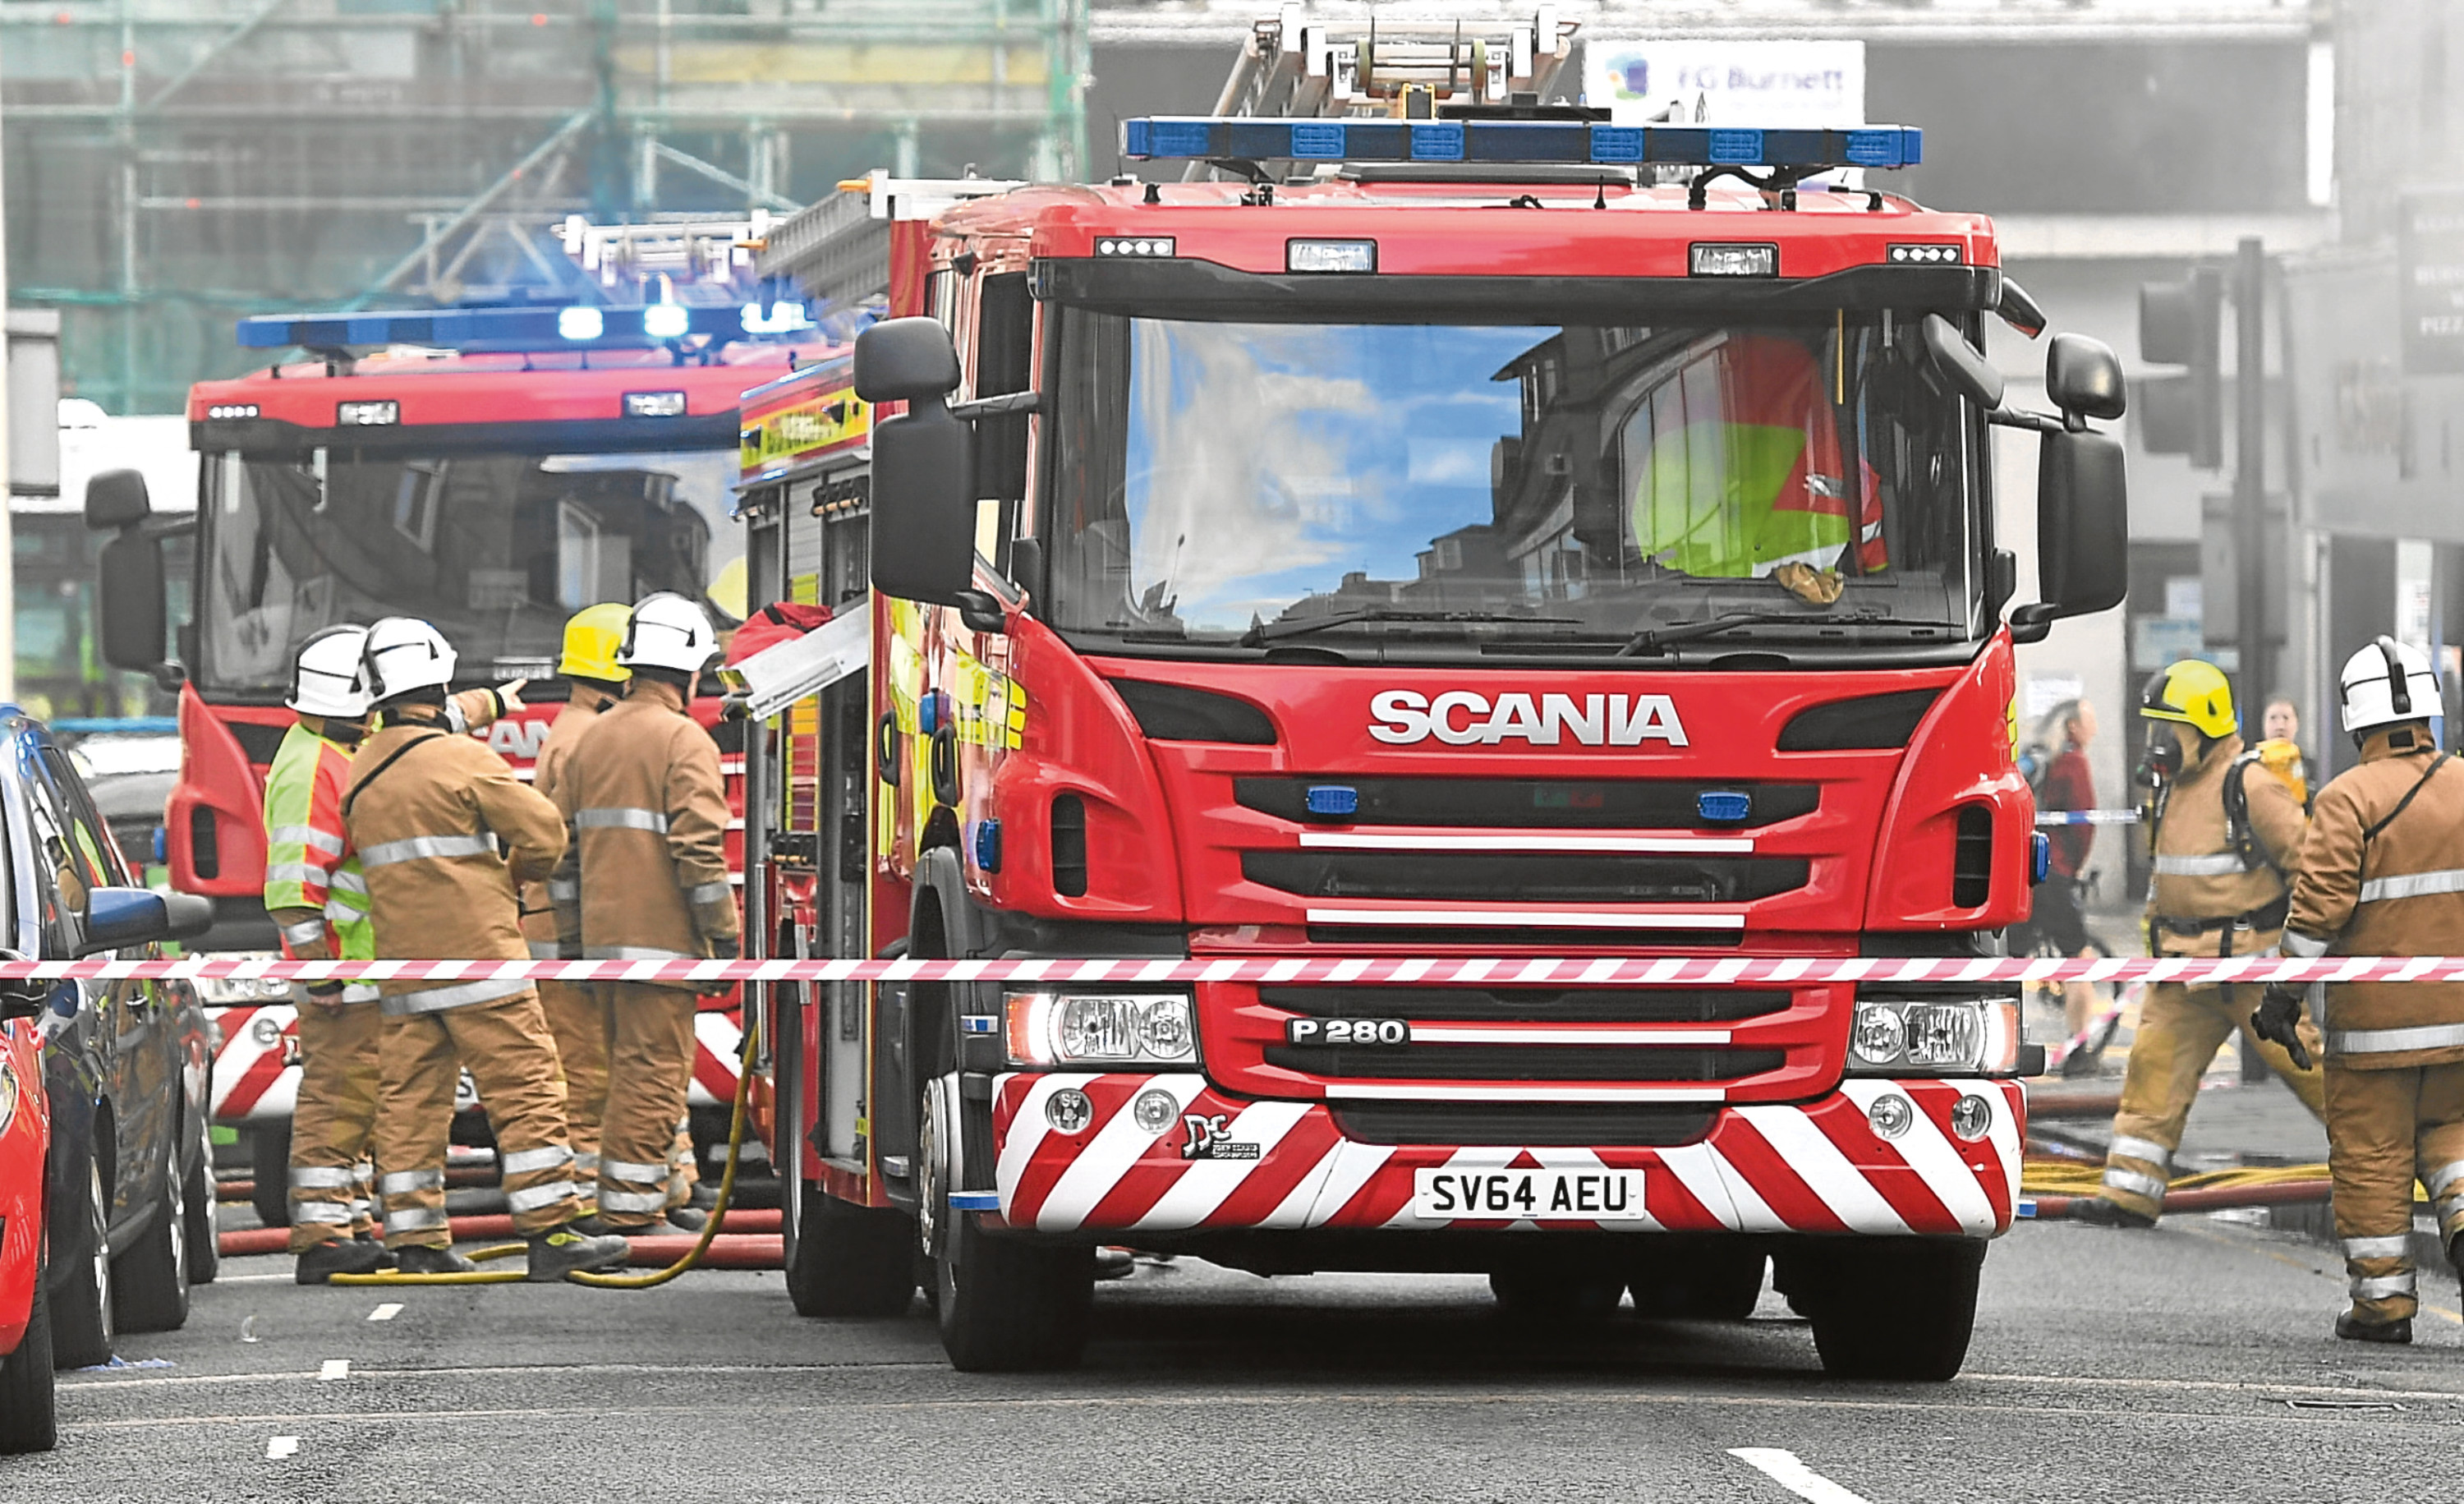 The lack of available fire crews could put the city at risk, it has been claimed.